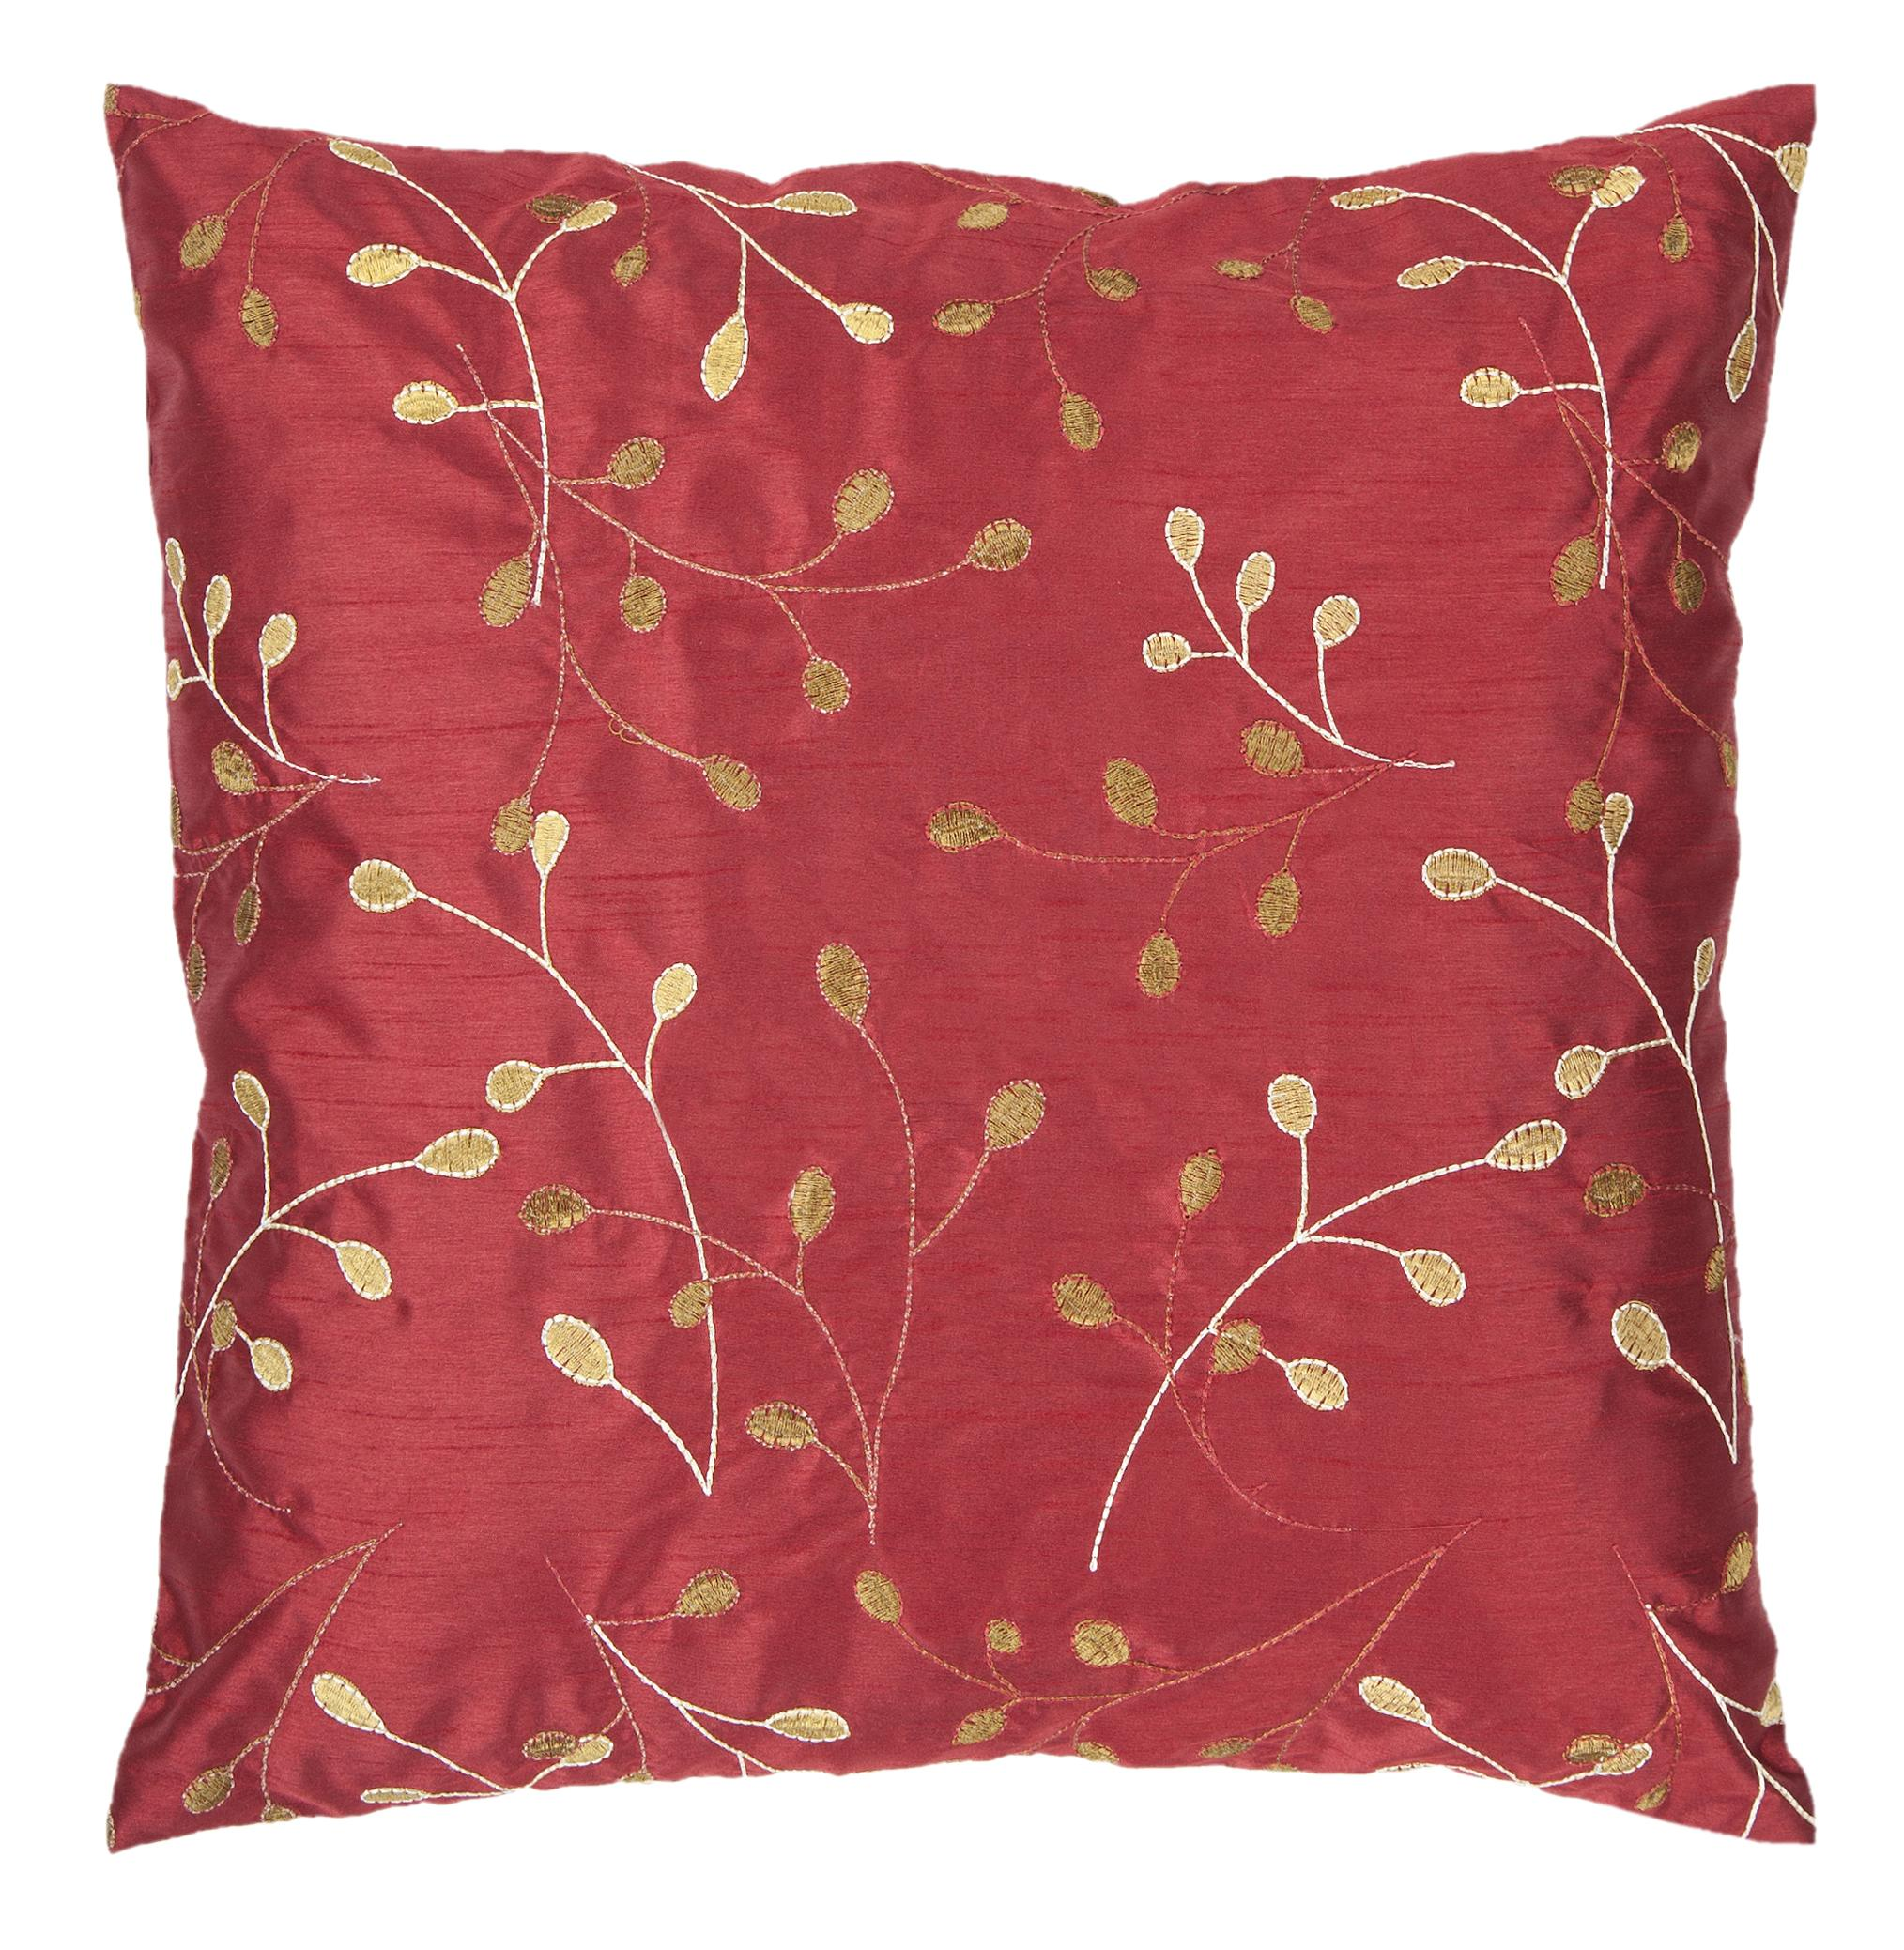 "Surya Rugs Pillows 22"" x 22"" Pillow - Item Number: HH093-2222P"